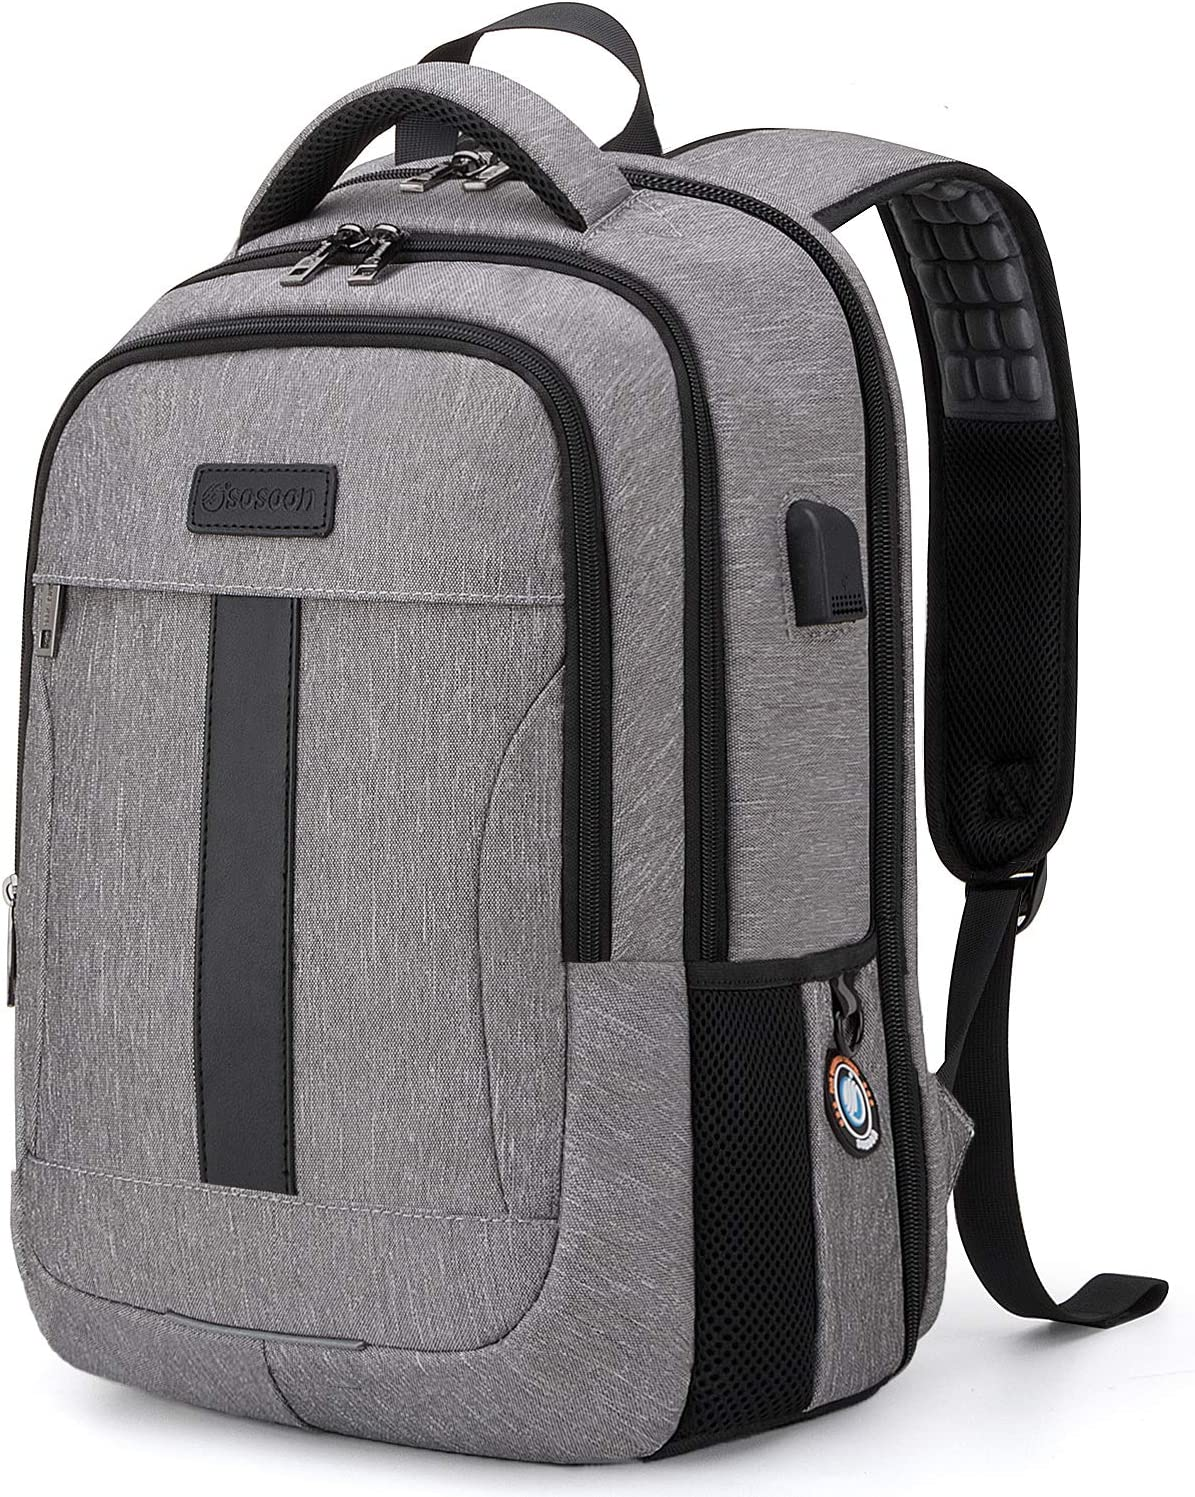 Sosoon Bussiness Laptop Backpack (15.6-17 Inch)